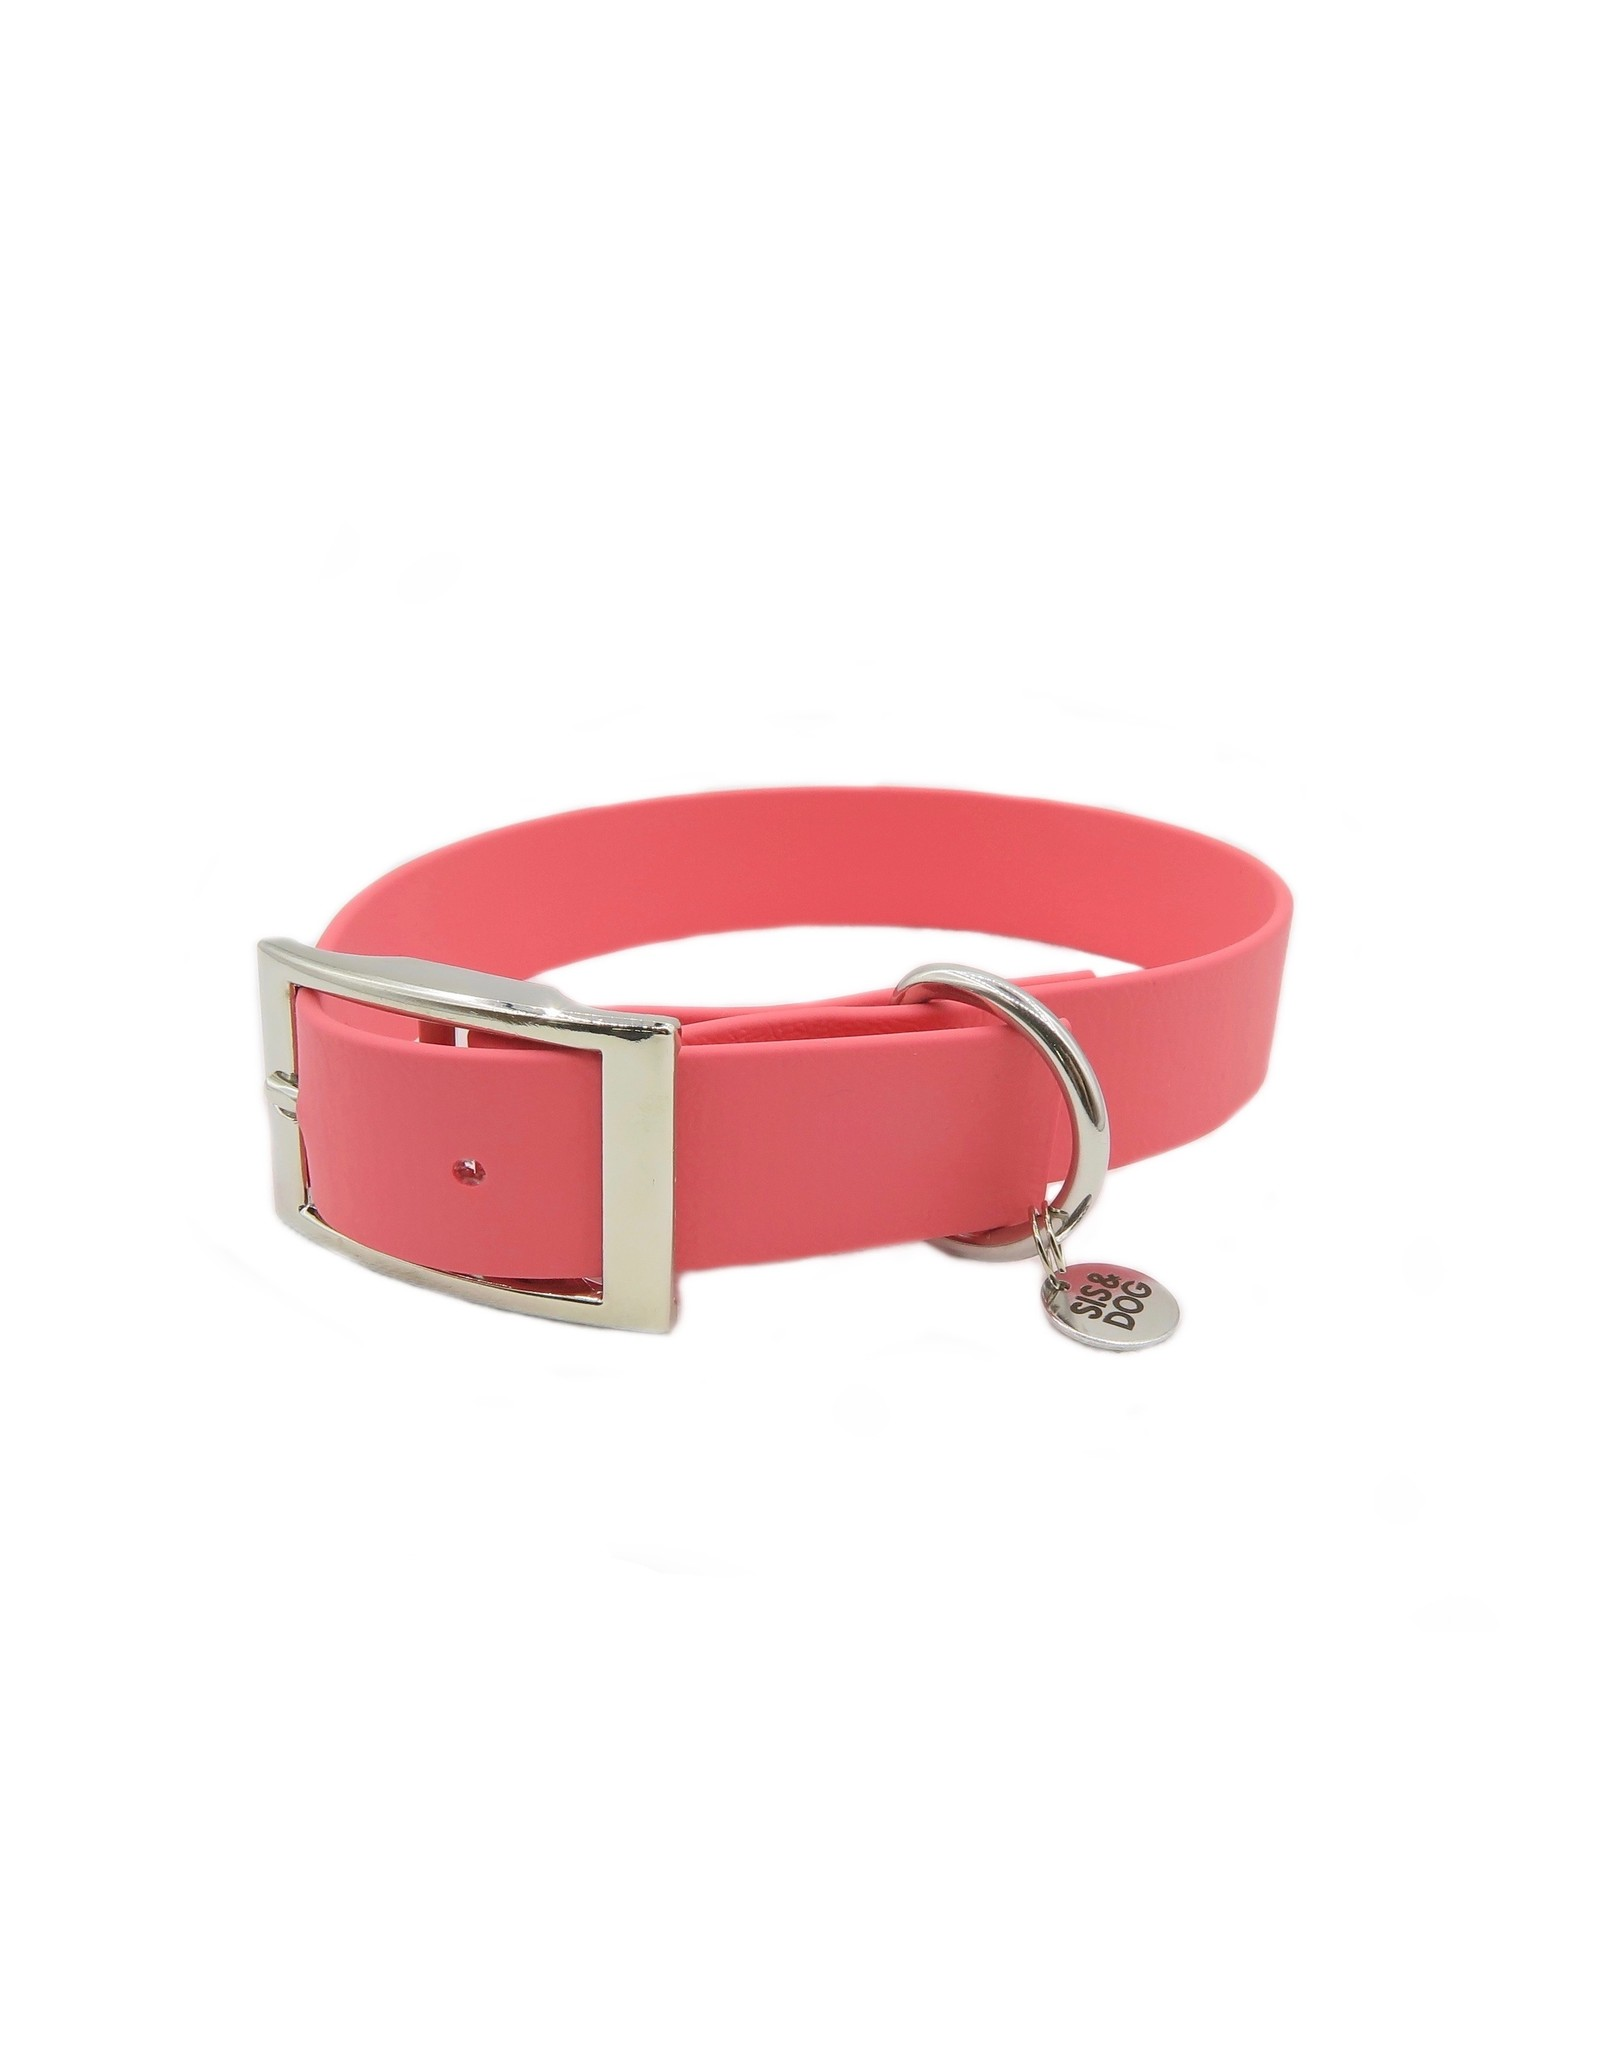 Collar coral wide